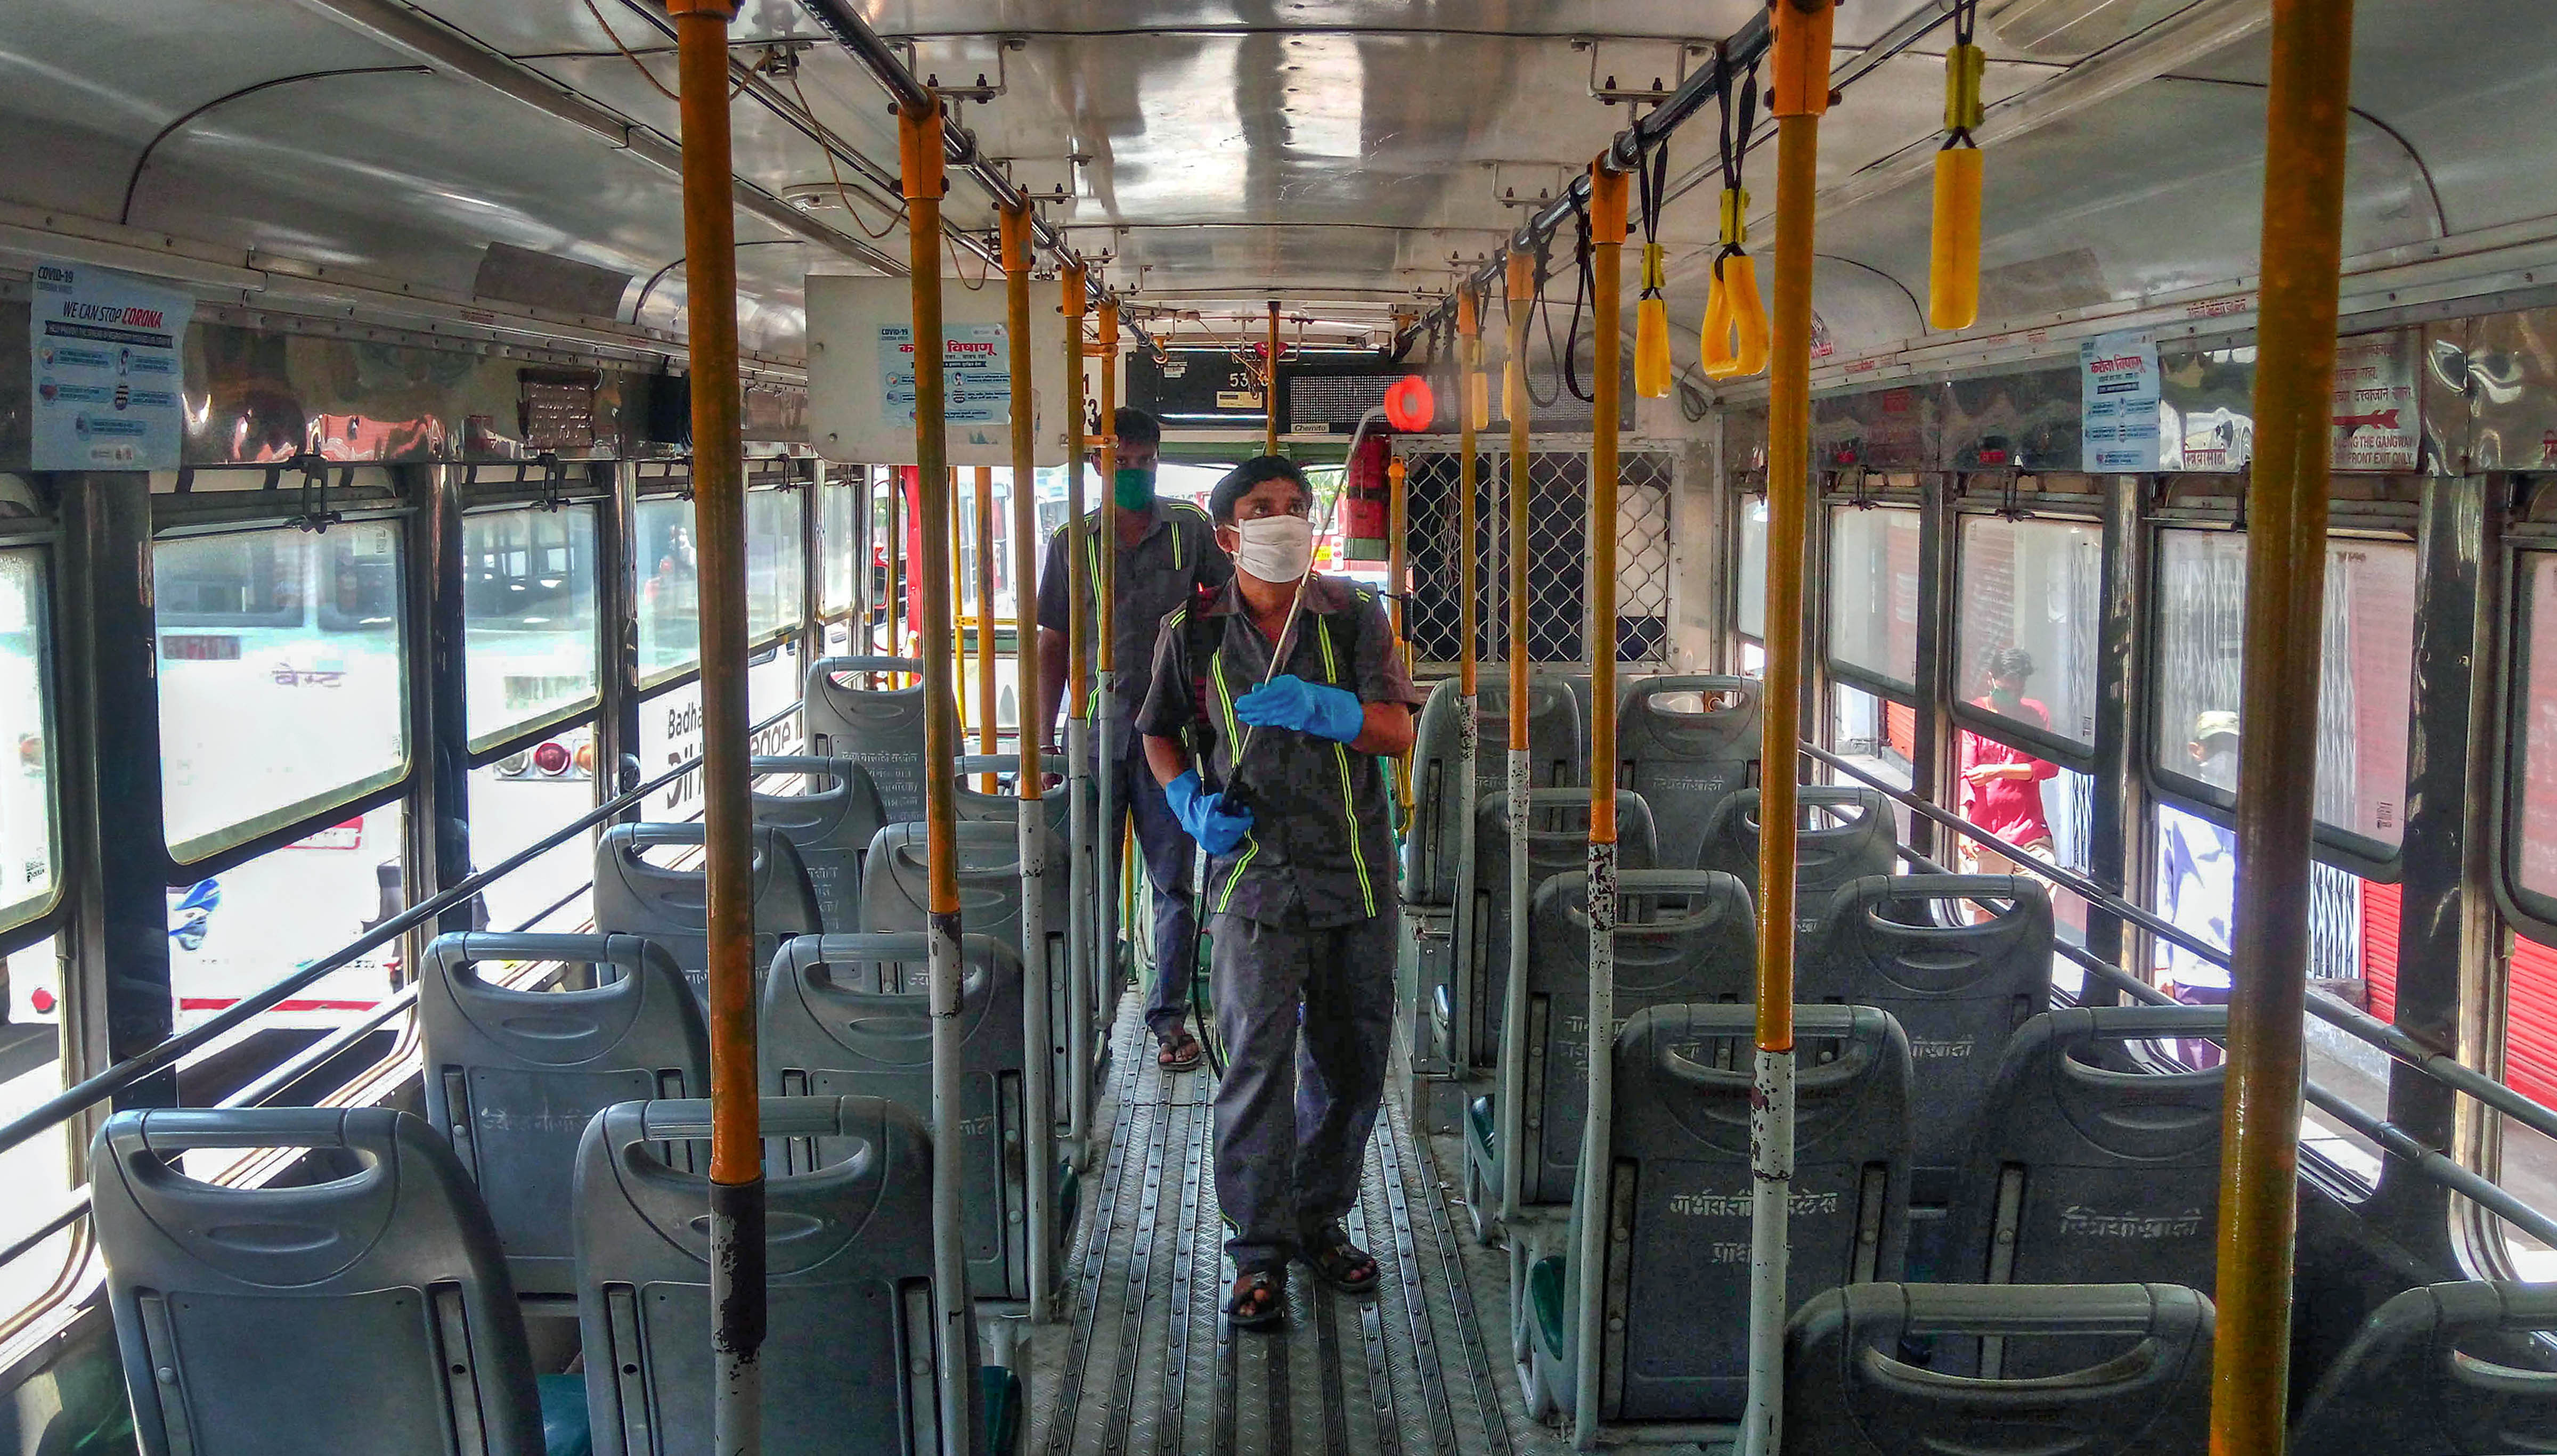 Municipal Corporation (BMC) worker sprays disinfectant inside a Brihanmumbai Electricity Supply and Transport (BEST) bus, during the nationwide lockdown in the wake of the coronavirus pandemic, at Borivali in Mumbai, Wednesday, April 8, 2020.